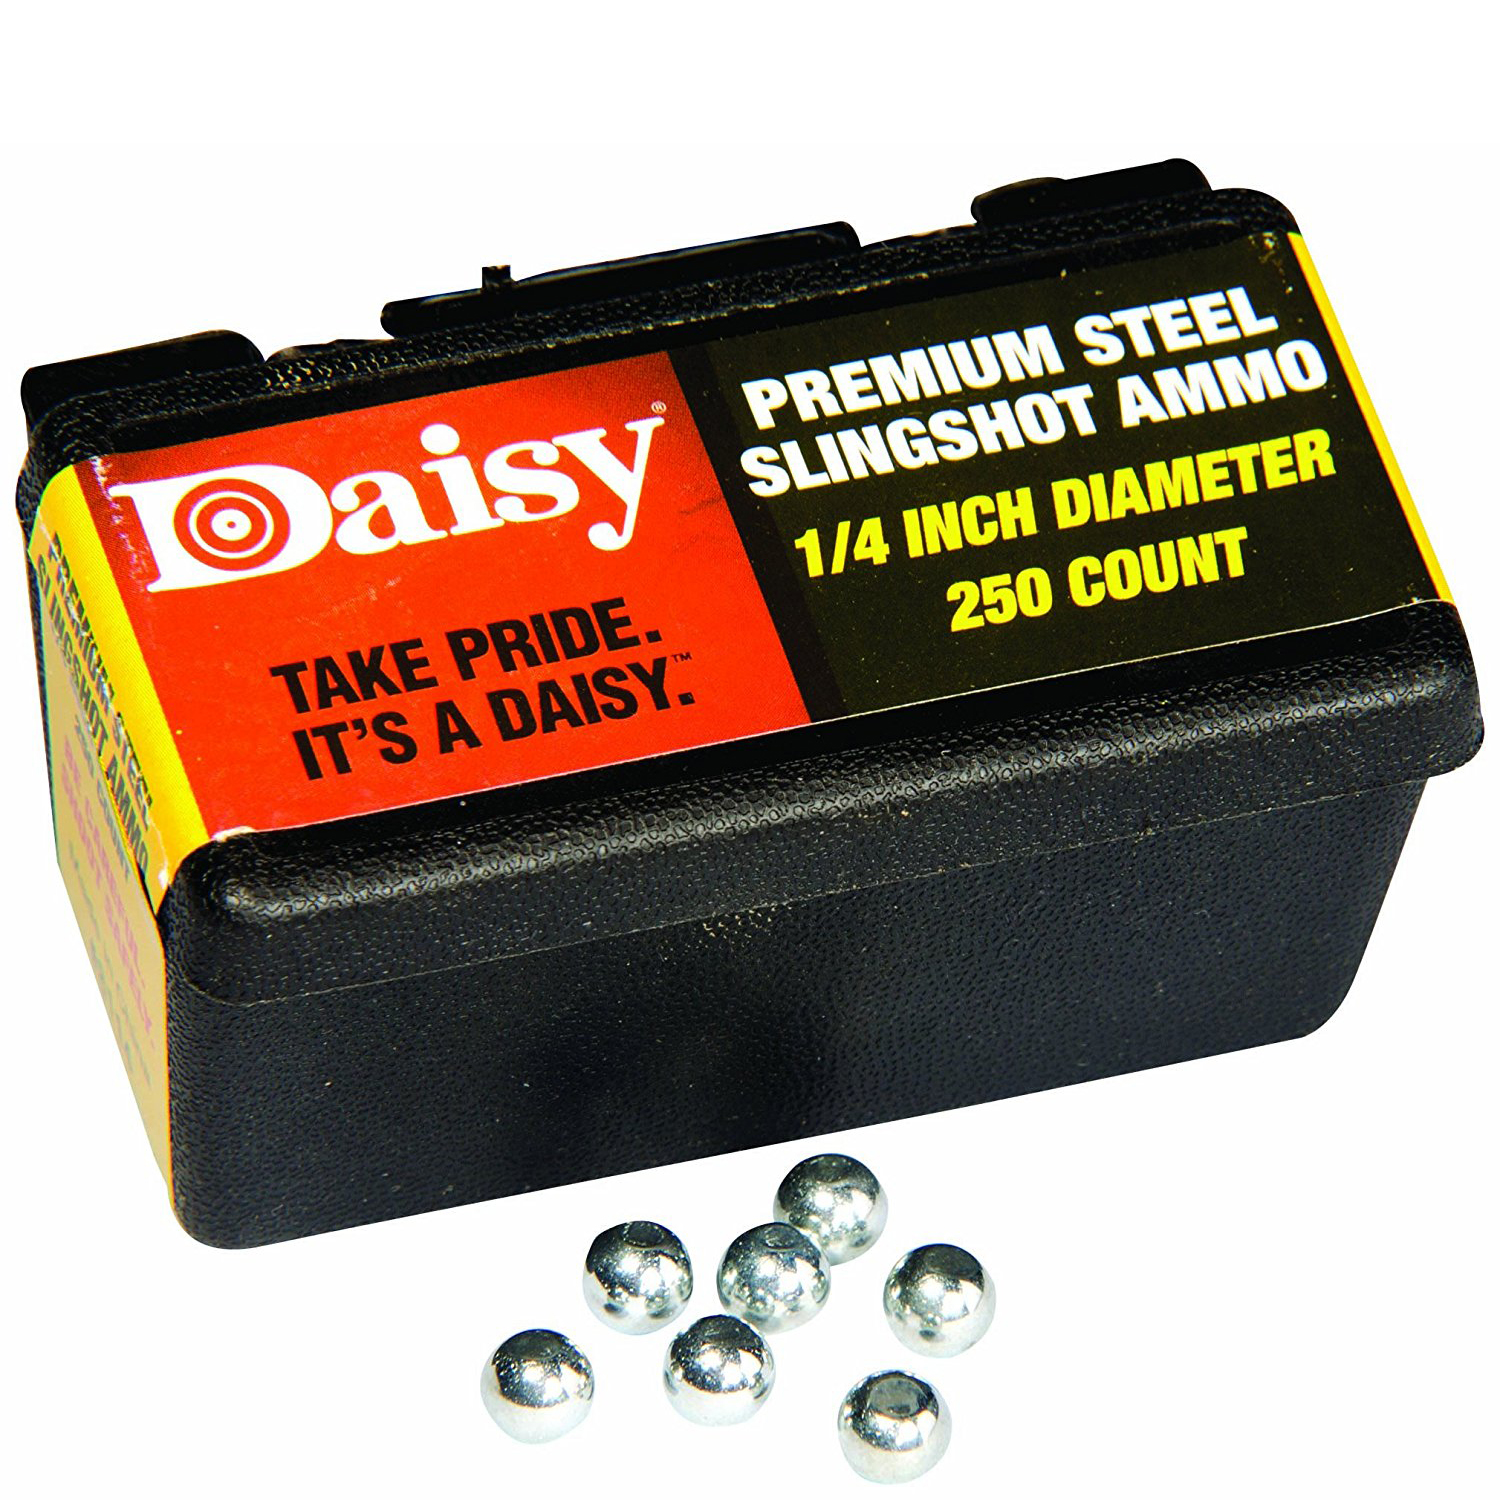 Daisy 1/4 Inch Steel Slingshot Ammo - 250 Count Box